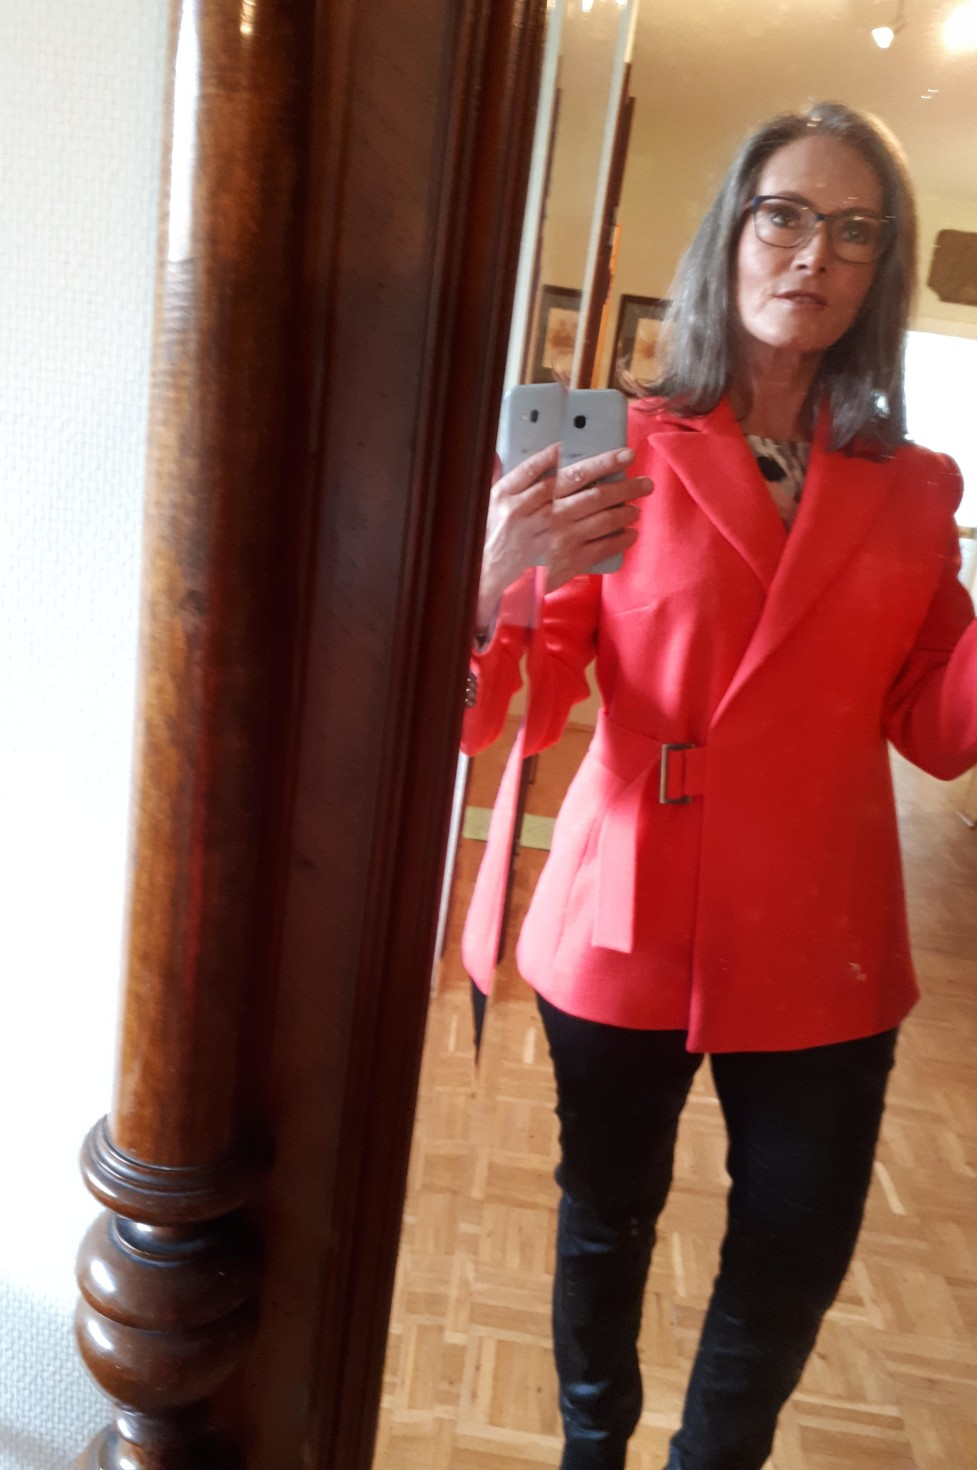 burda style Nutzerkreation marylou Probeblazer mit Inges Methode